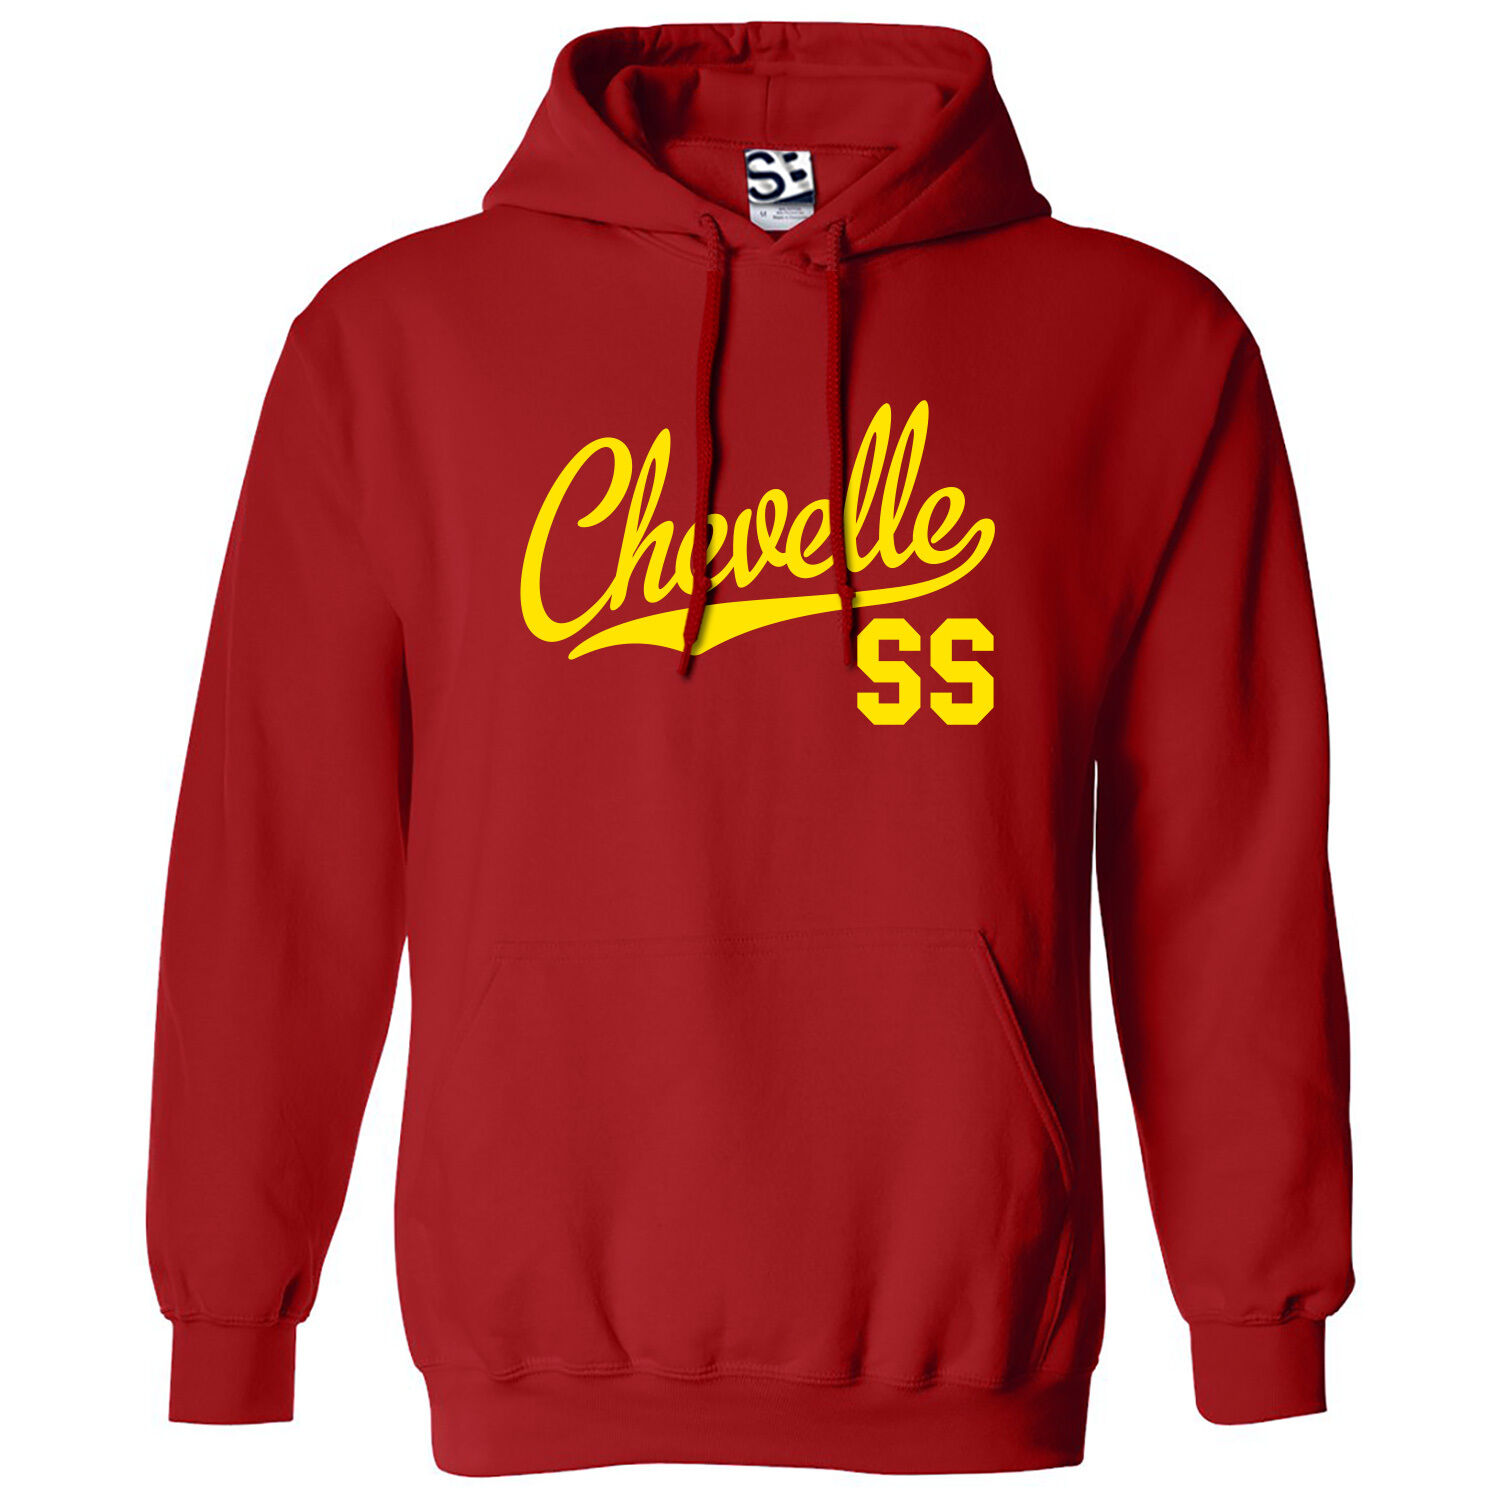 Chevelle SS Script & Tail HOODIE - Hooded Muscle Car Sweatshirt w All Farbes